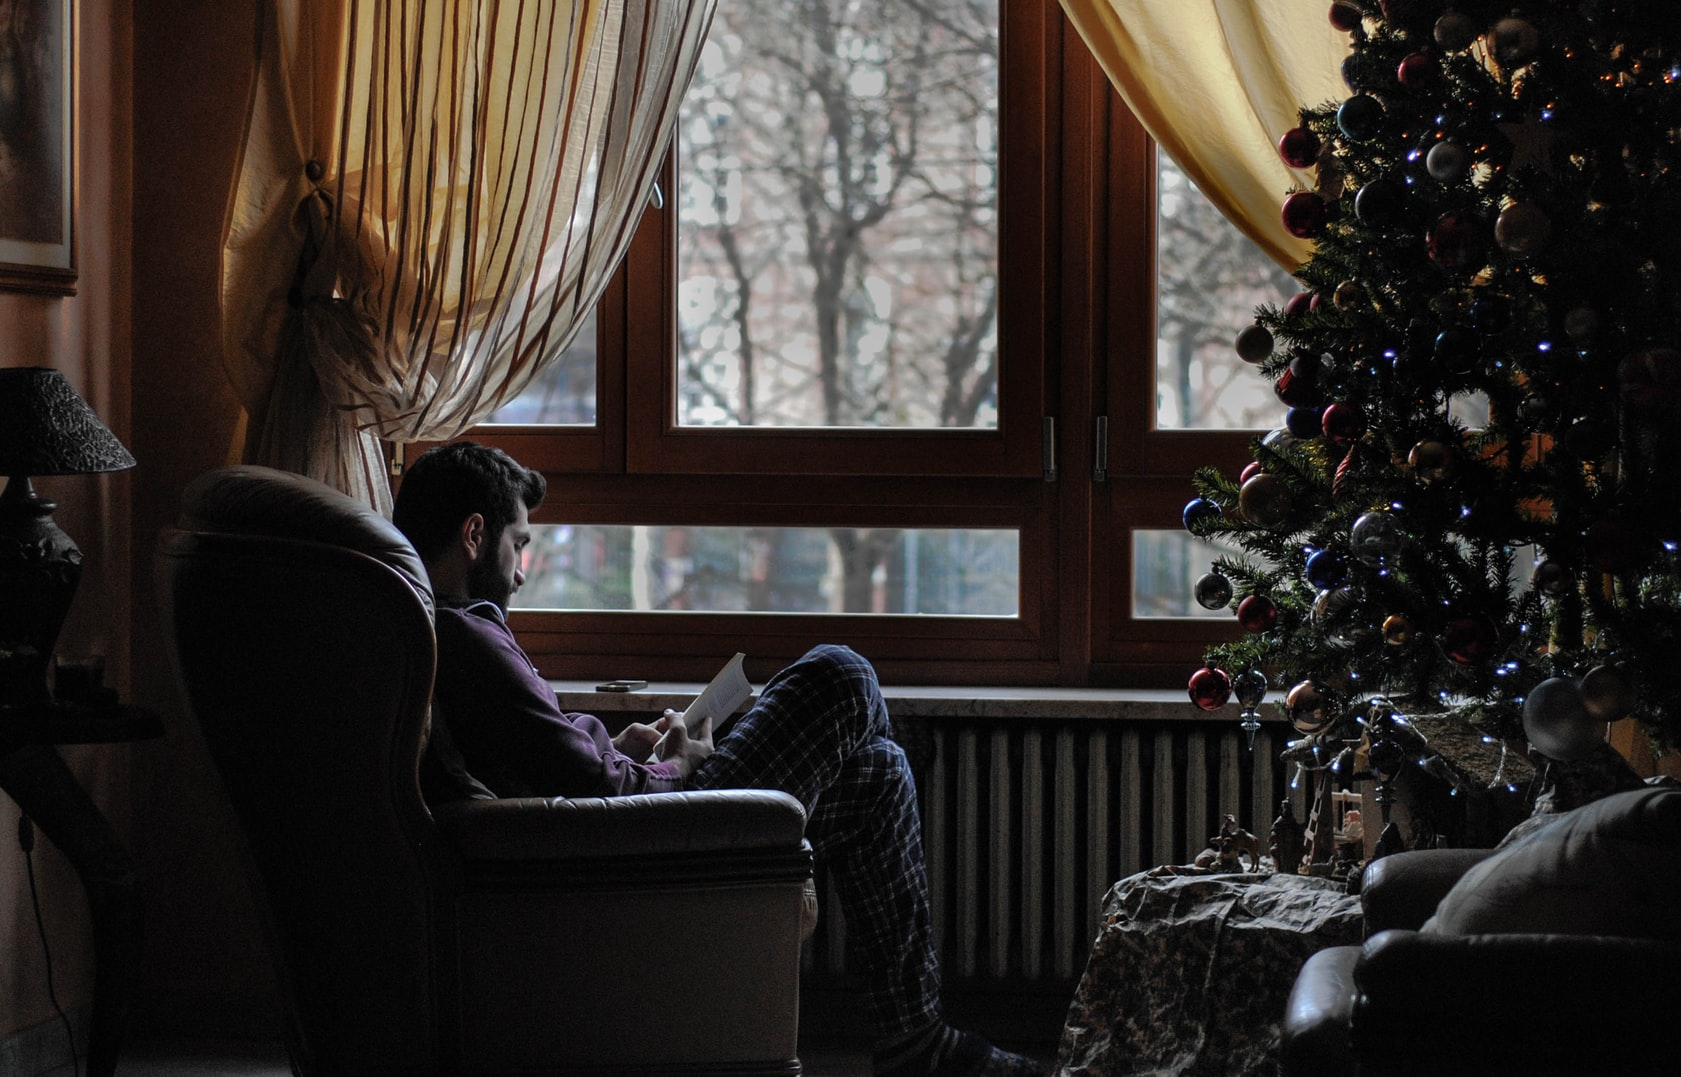 Man reading a book on sofa chair near Christmas tree